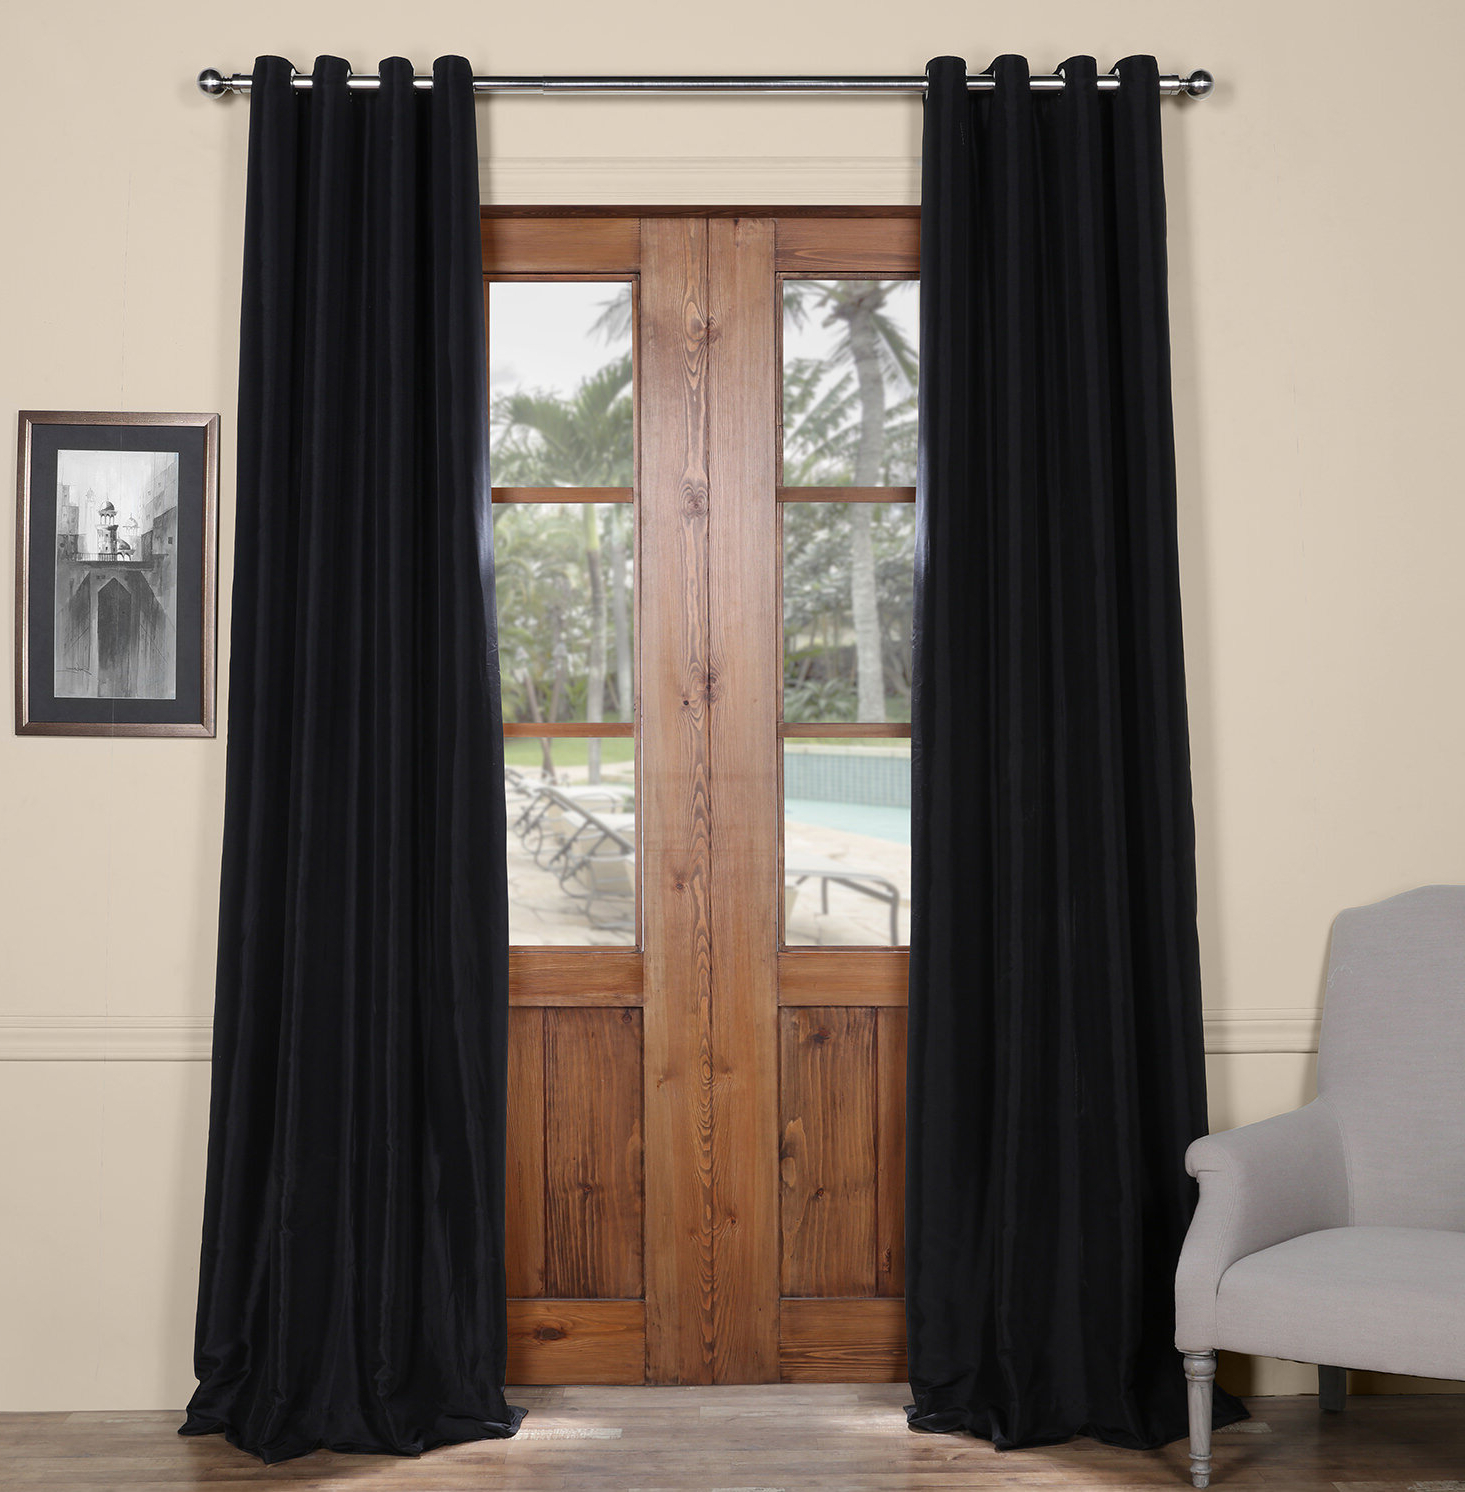 Clapham Solid Blackout Faux Silk Taffeta Thermal Rod Pocket Single Curtain  Panel Pertaining To Favorite Faux Silk Taffeta Solid Blackout Single Curtain Panels (View 2 of 20)